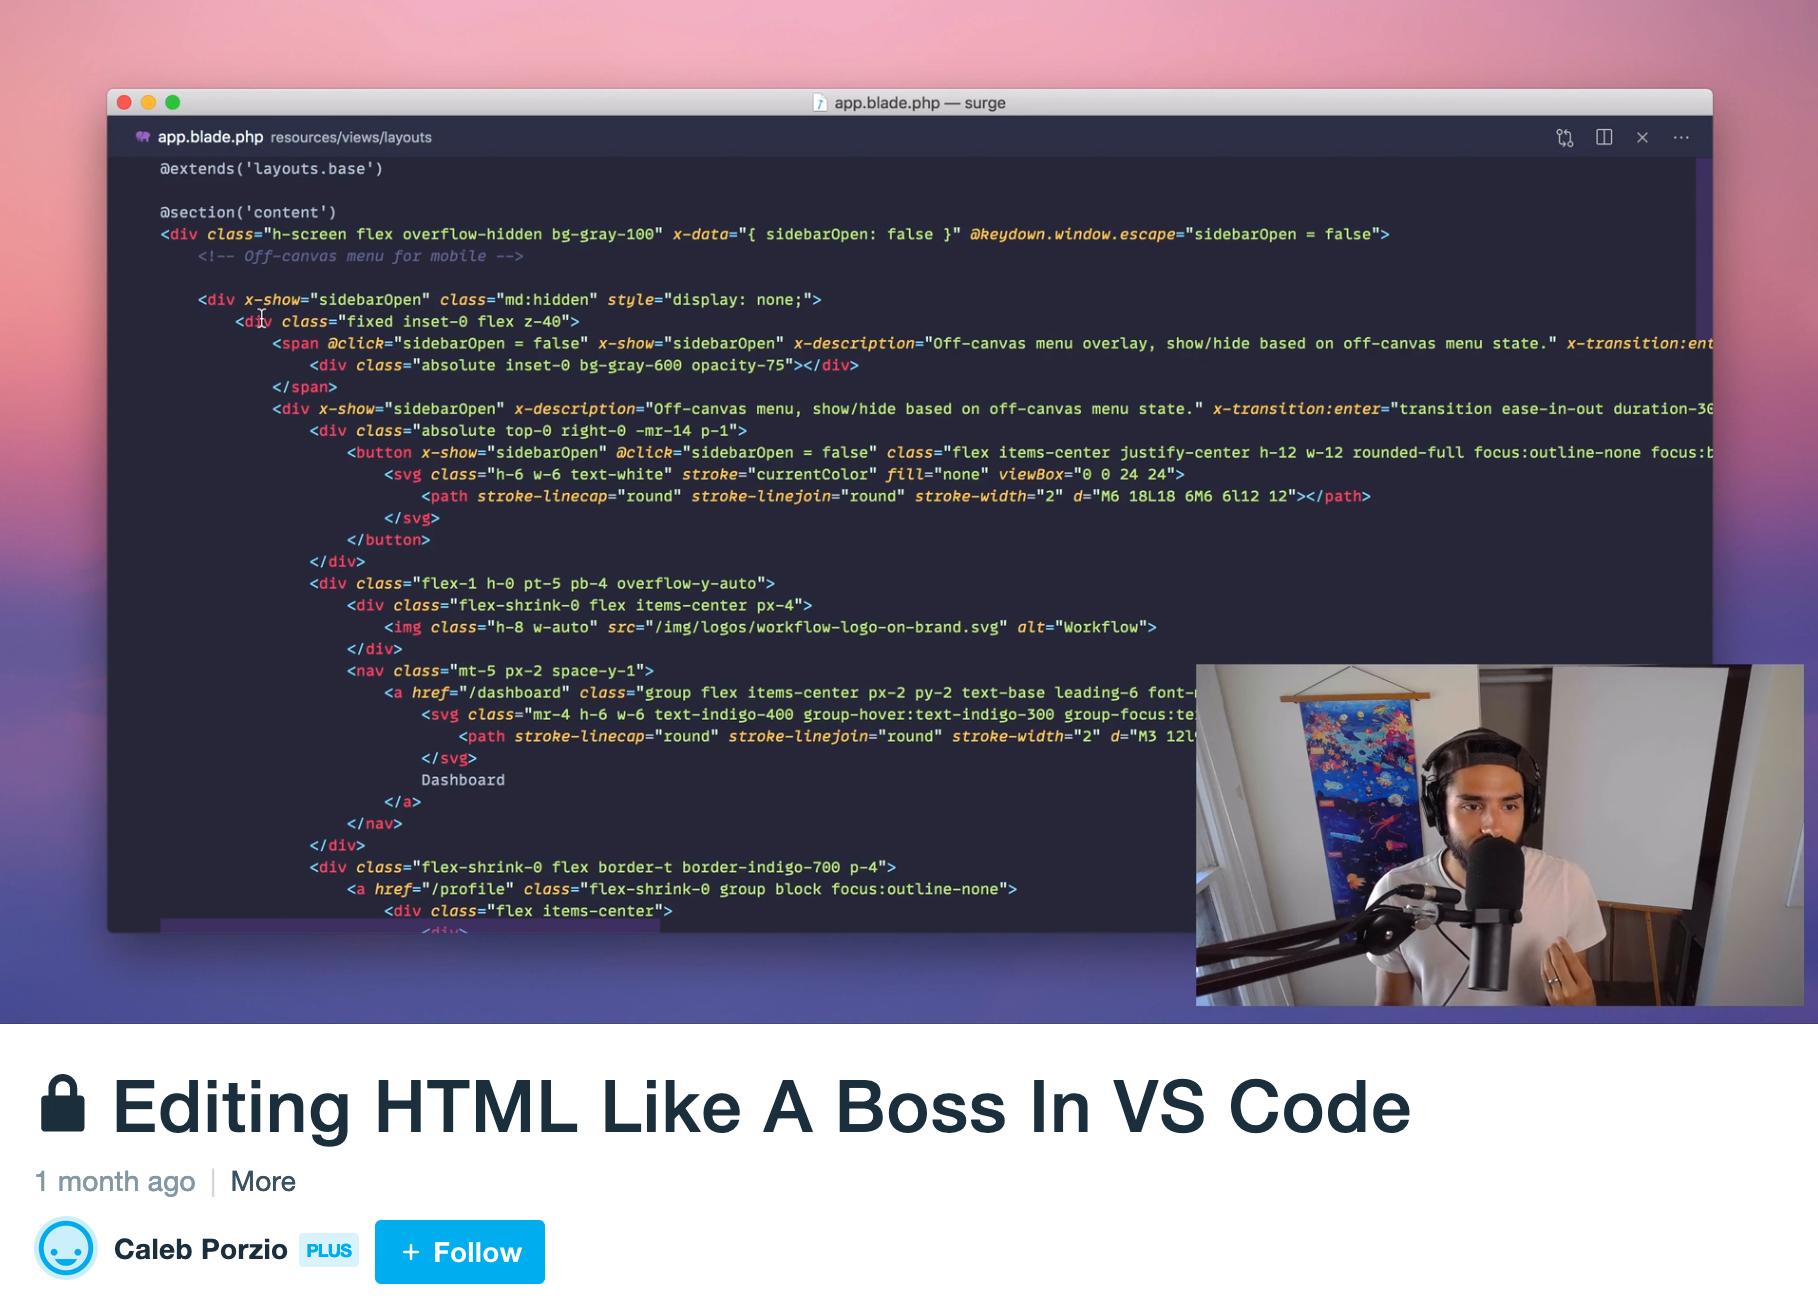 """Editing HTML Like A Boss In VS Code"" on Vimeo showing a code editor and caleb's webcam view"